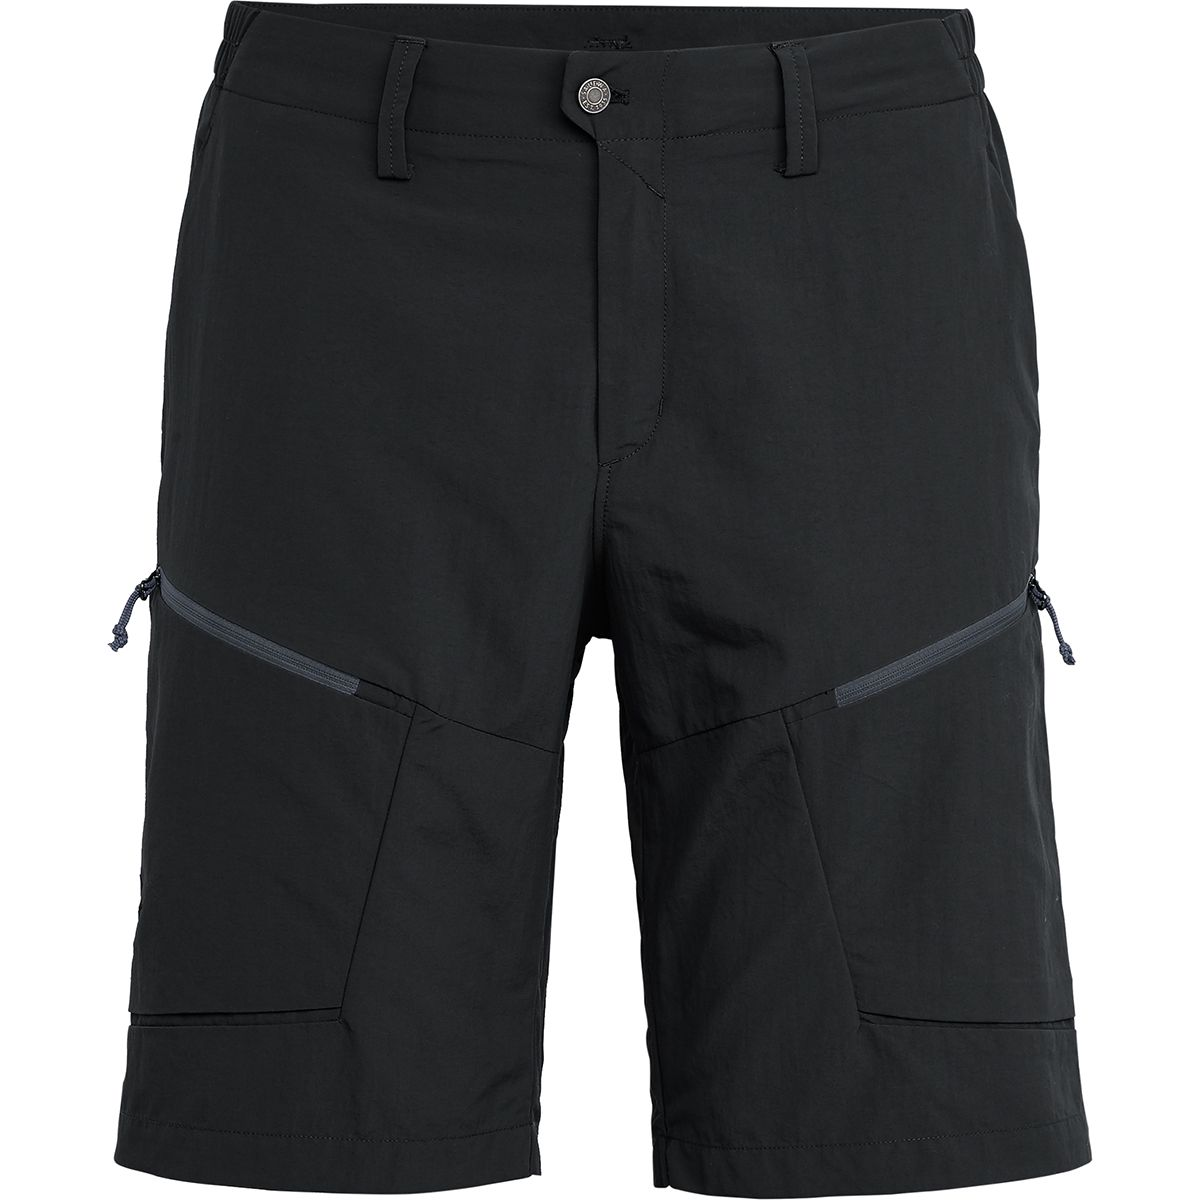 Salewa shorts